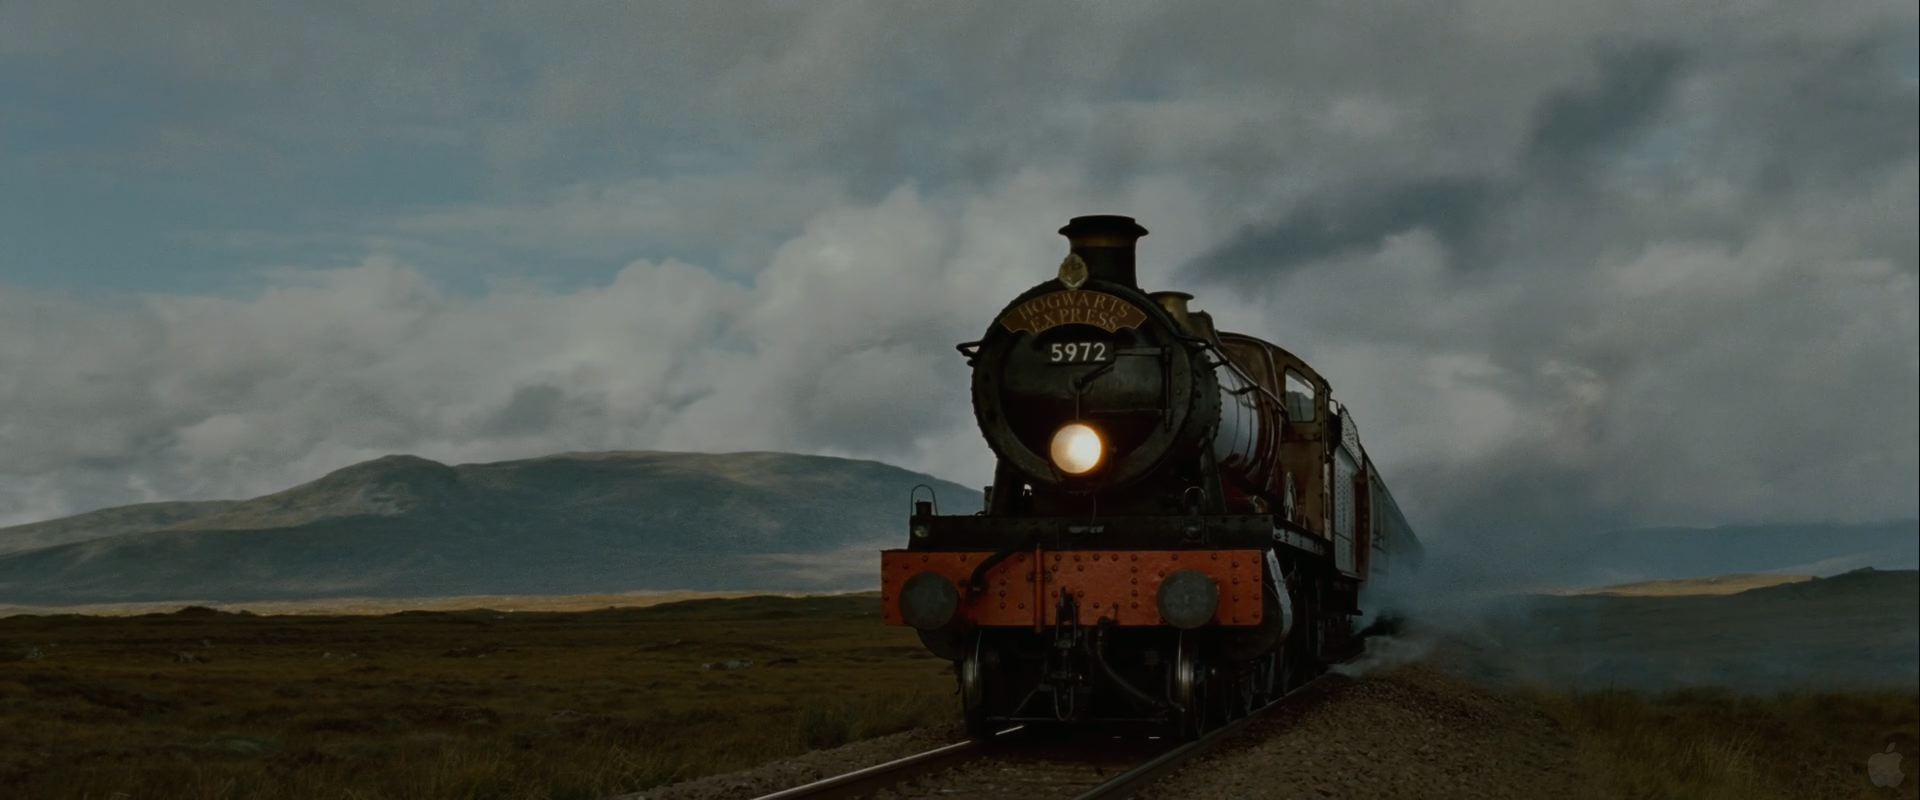 Hogwarts Express Harry Potter and the Deathly Hallows Wallpaper 1920x800